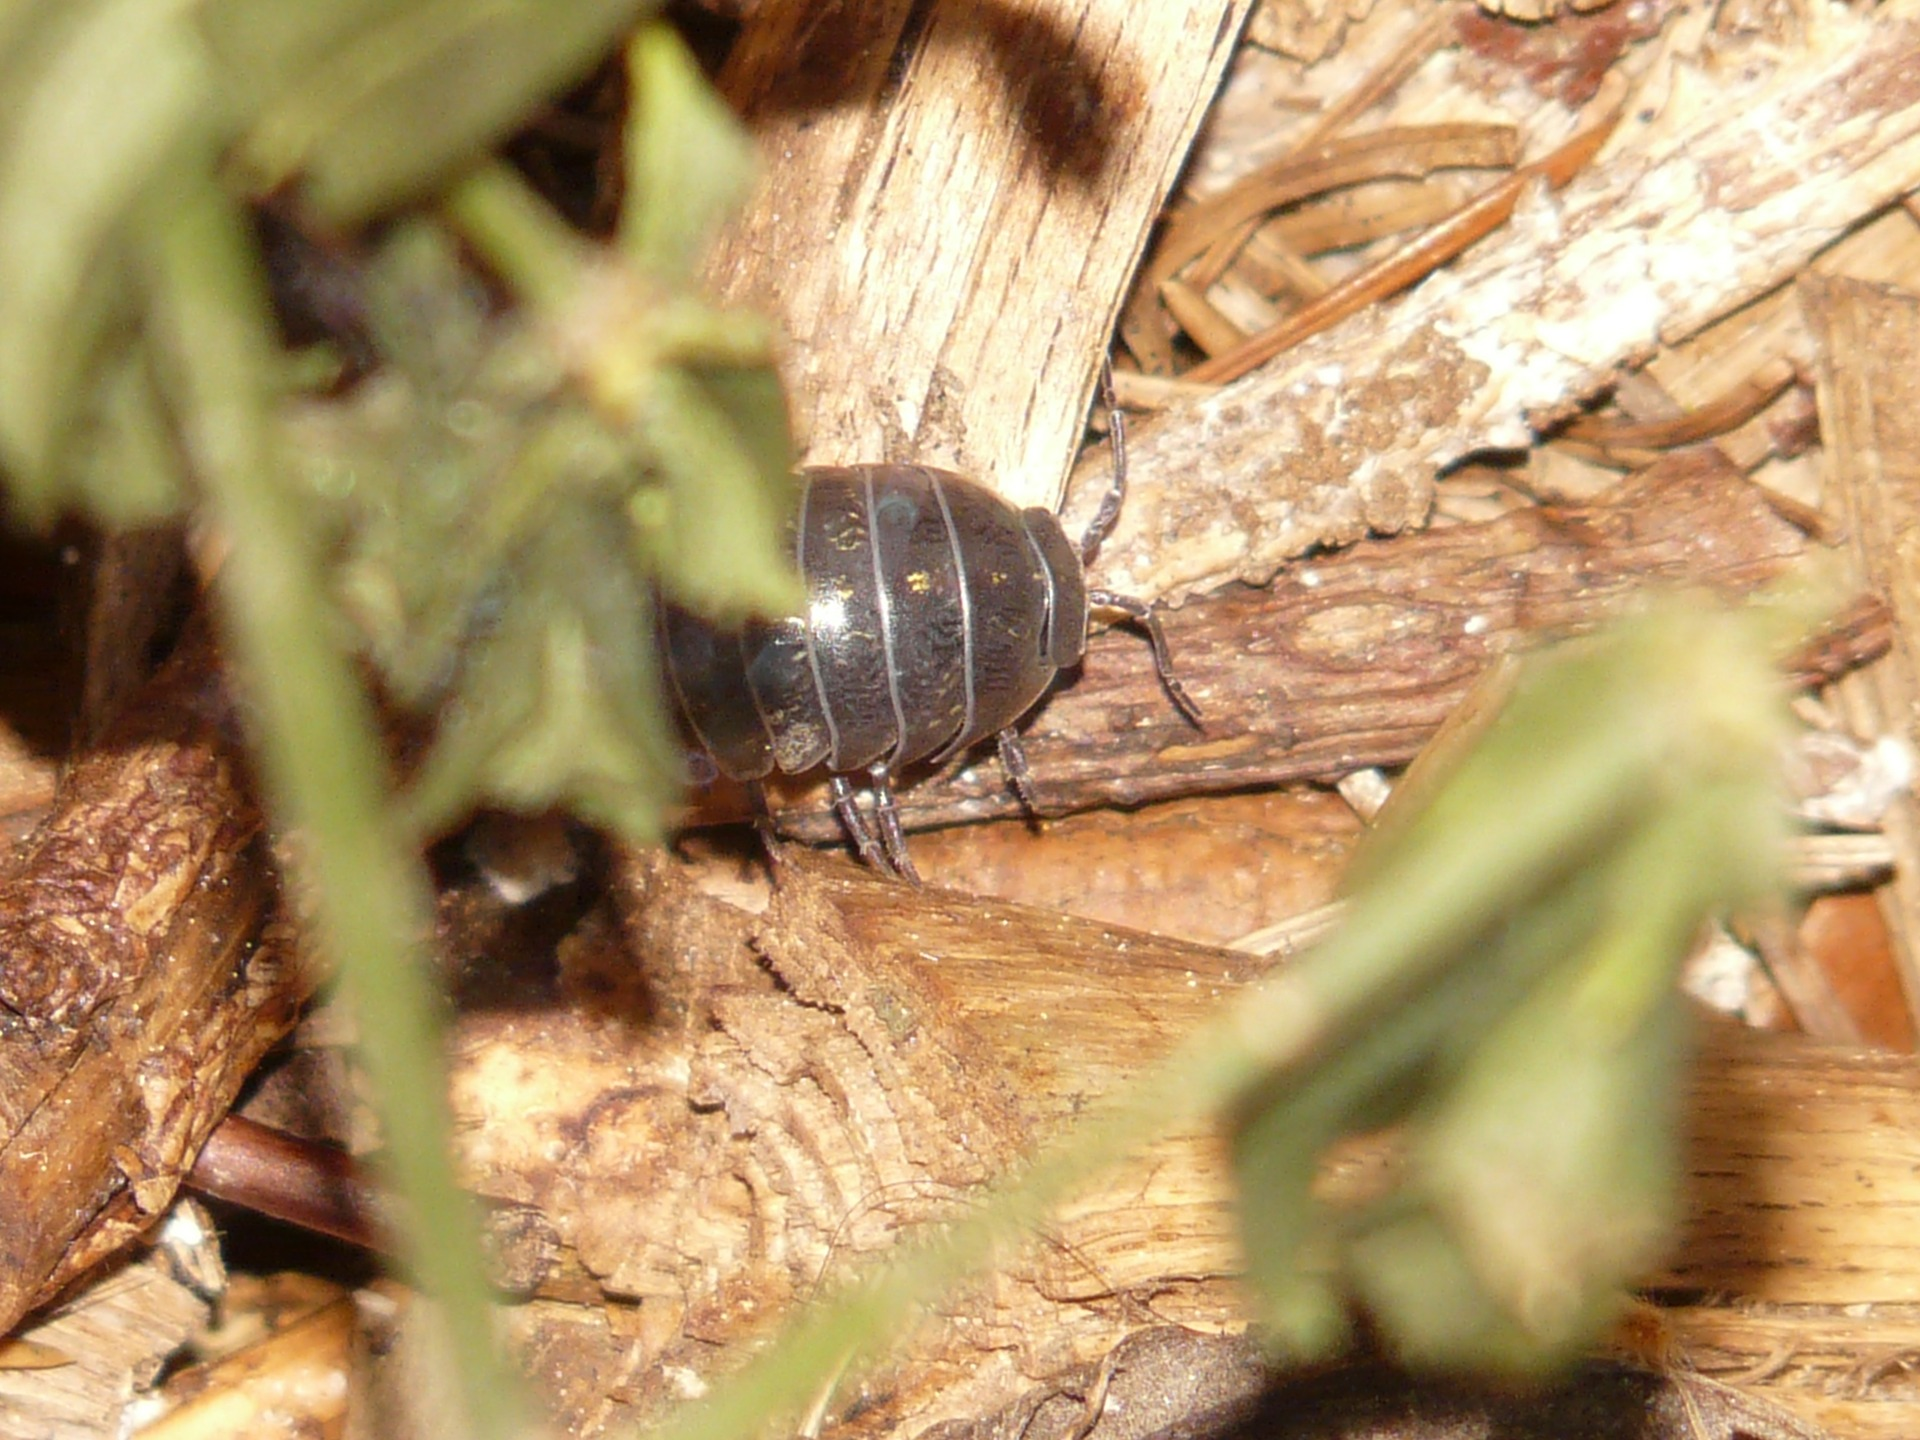 What Do Woodlice Eat?